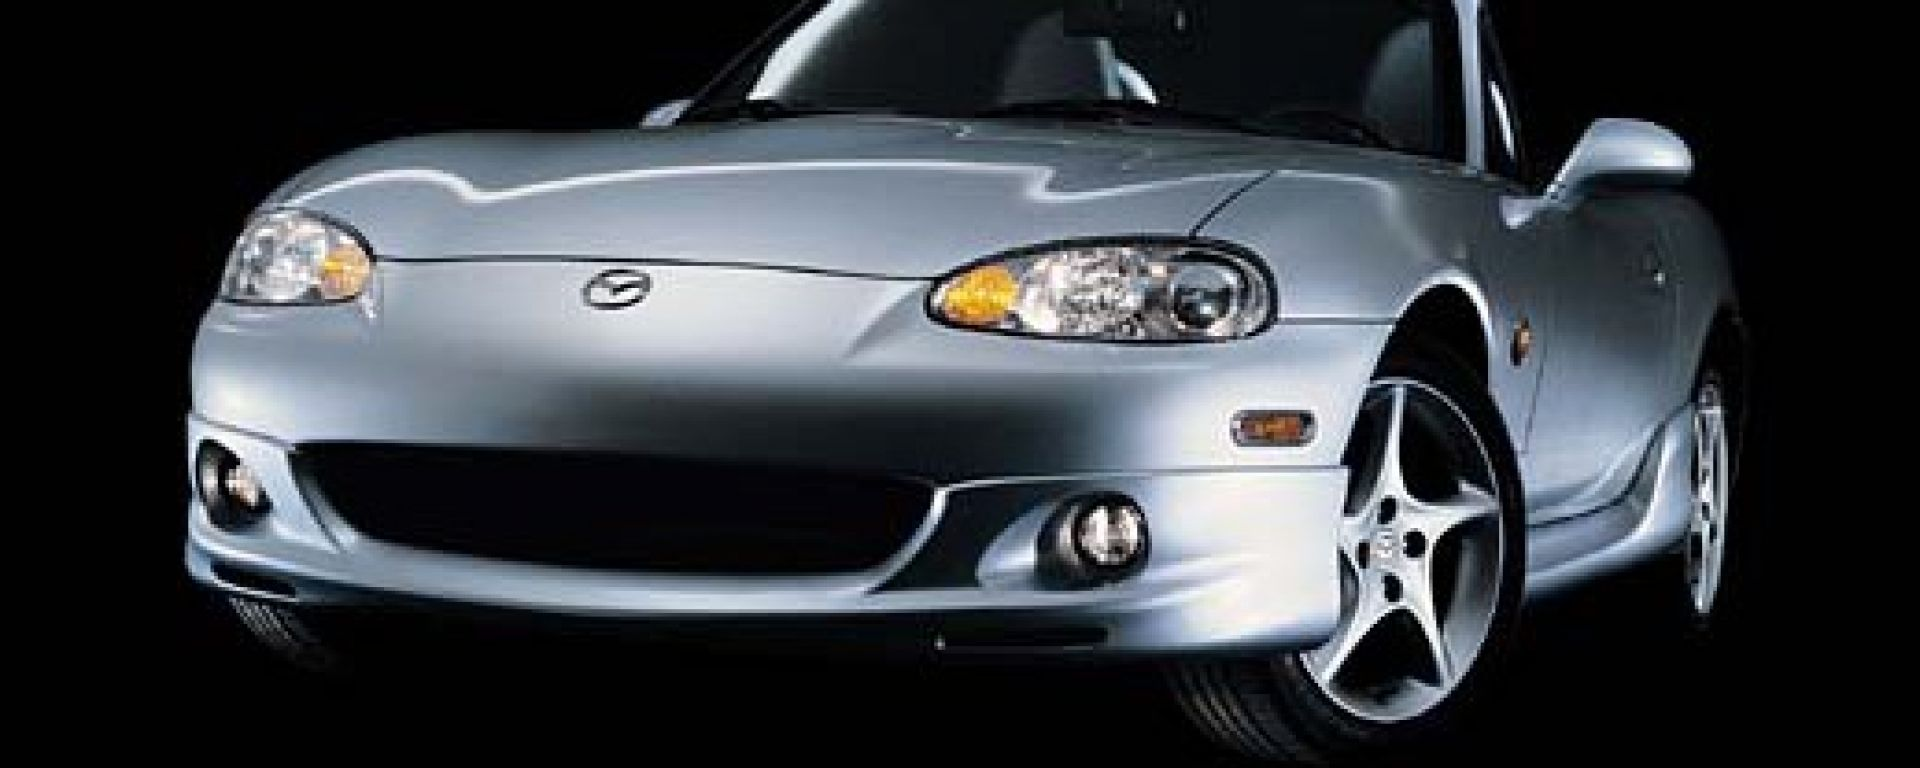 Mazda MX-5 Collection 2003